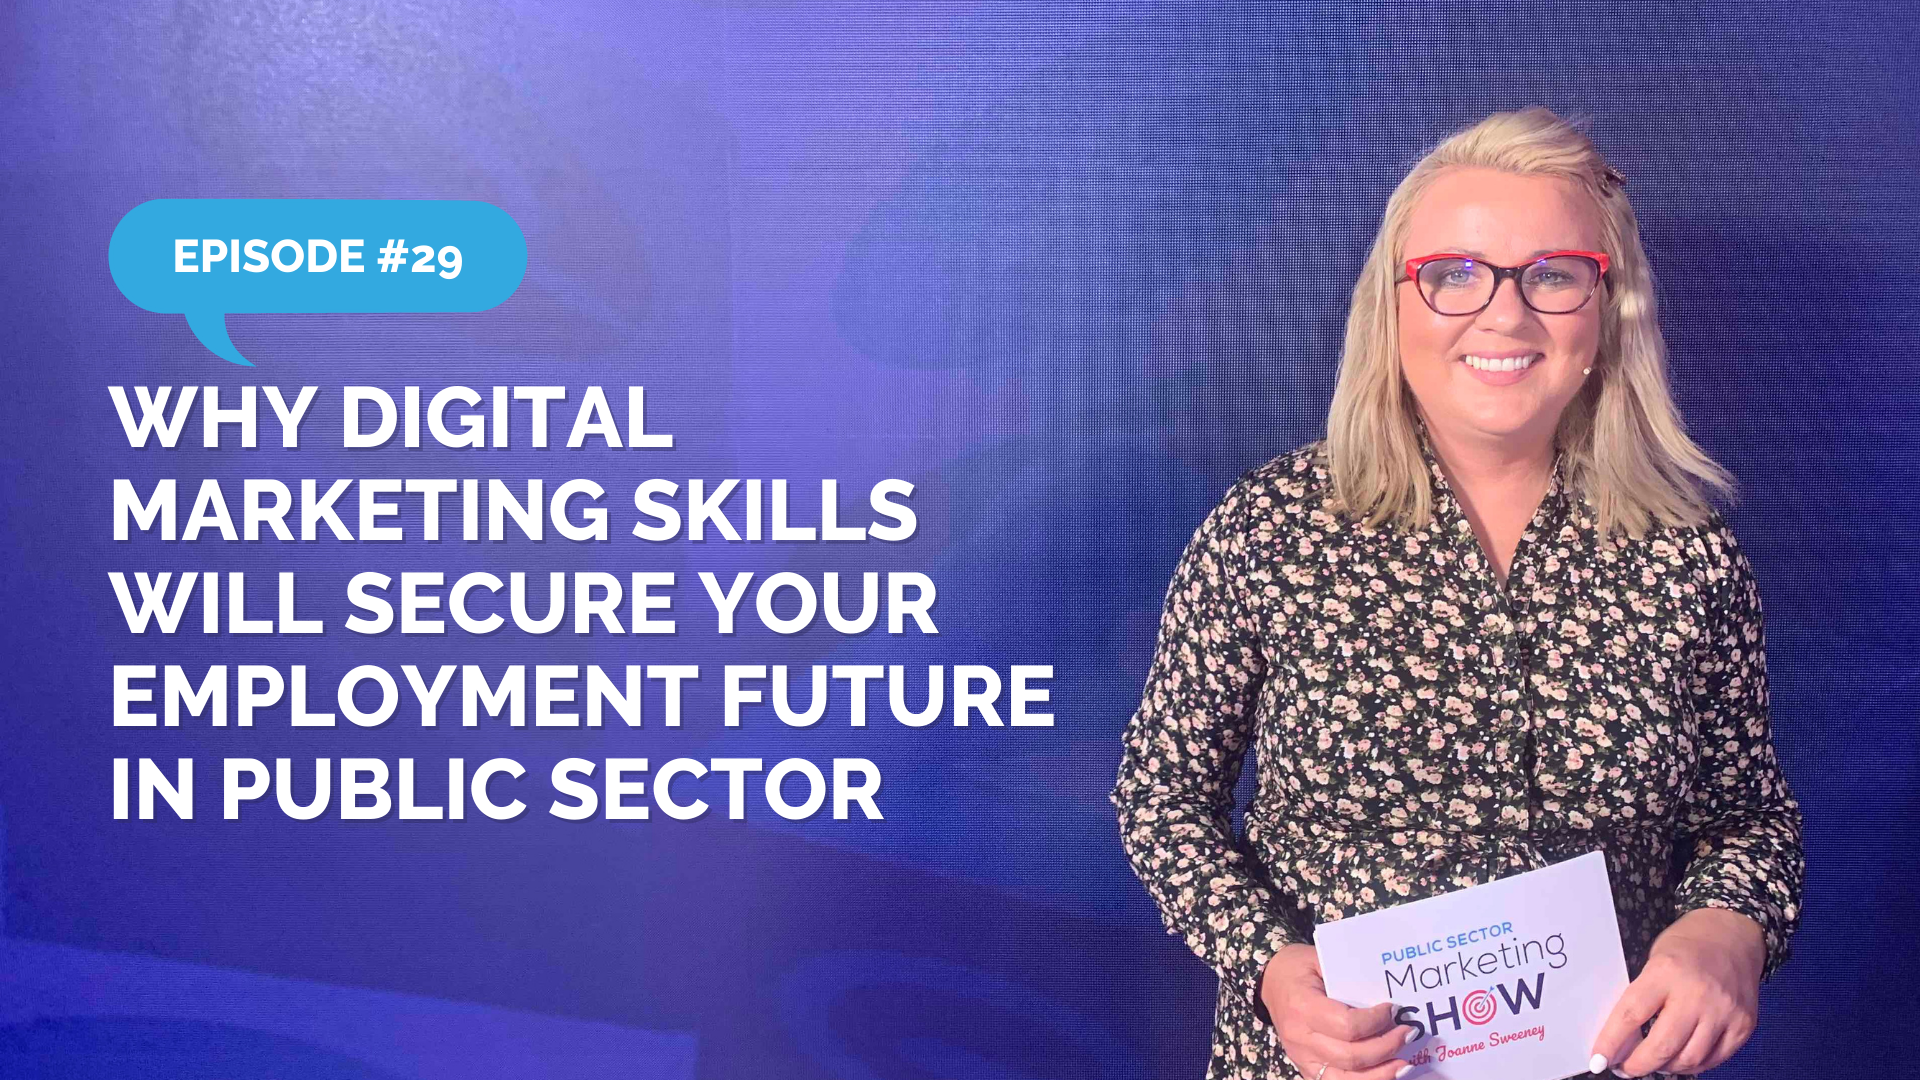 Episode 29 -Why Digital Marketing Skills Will Secure Your Employment Future in Public Sector